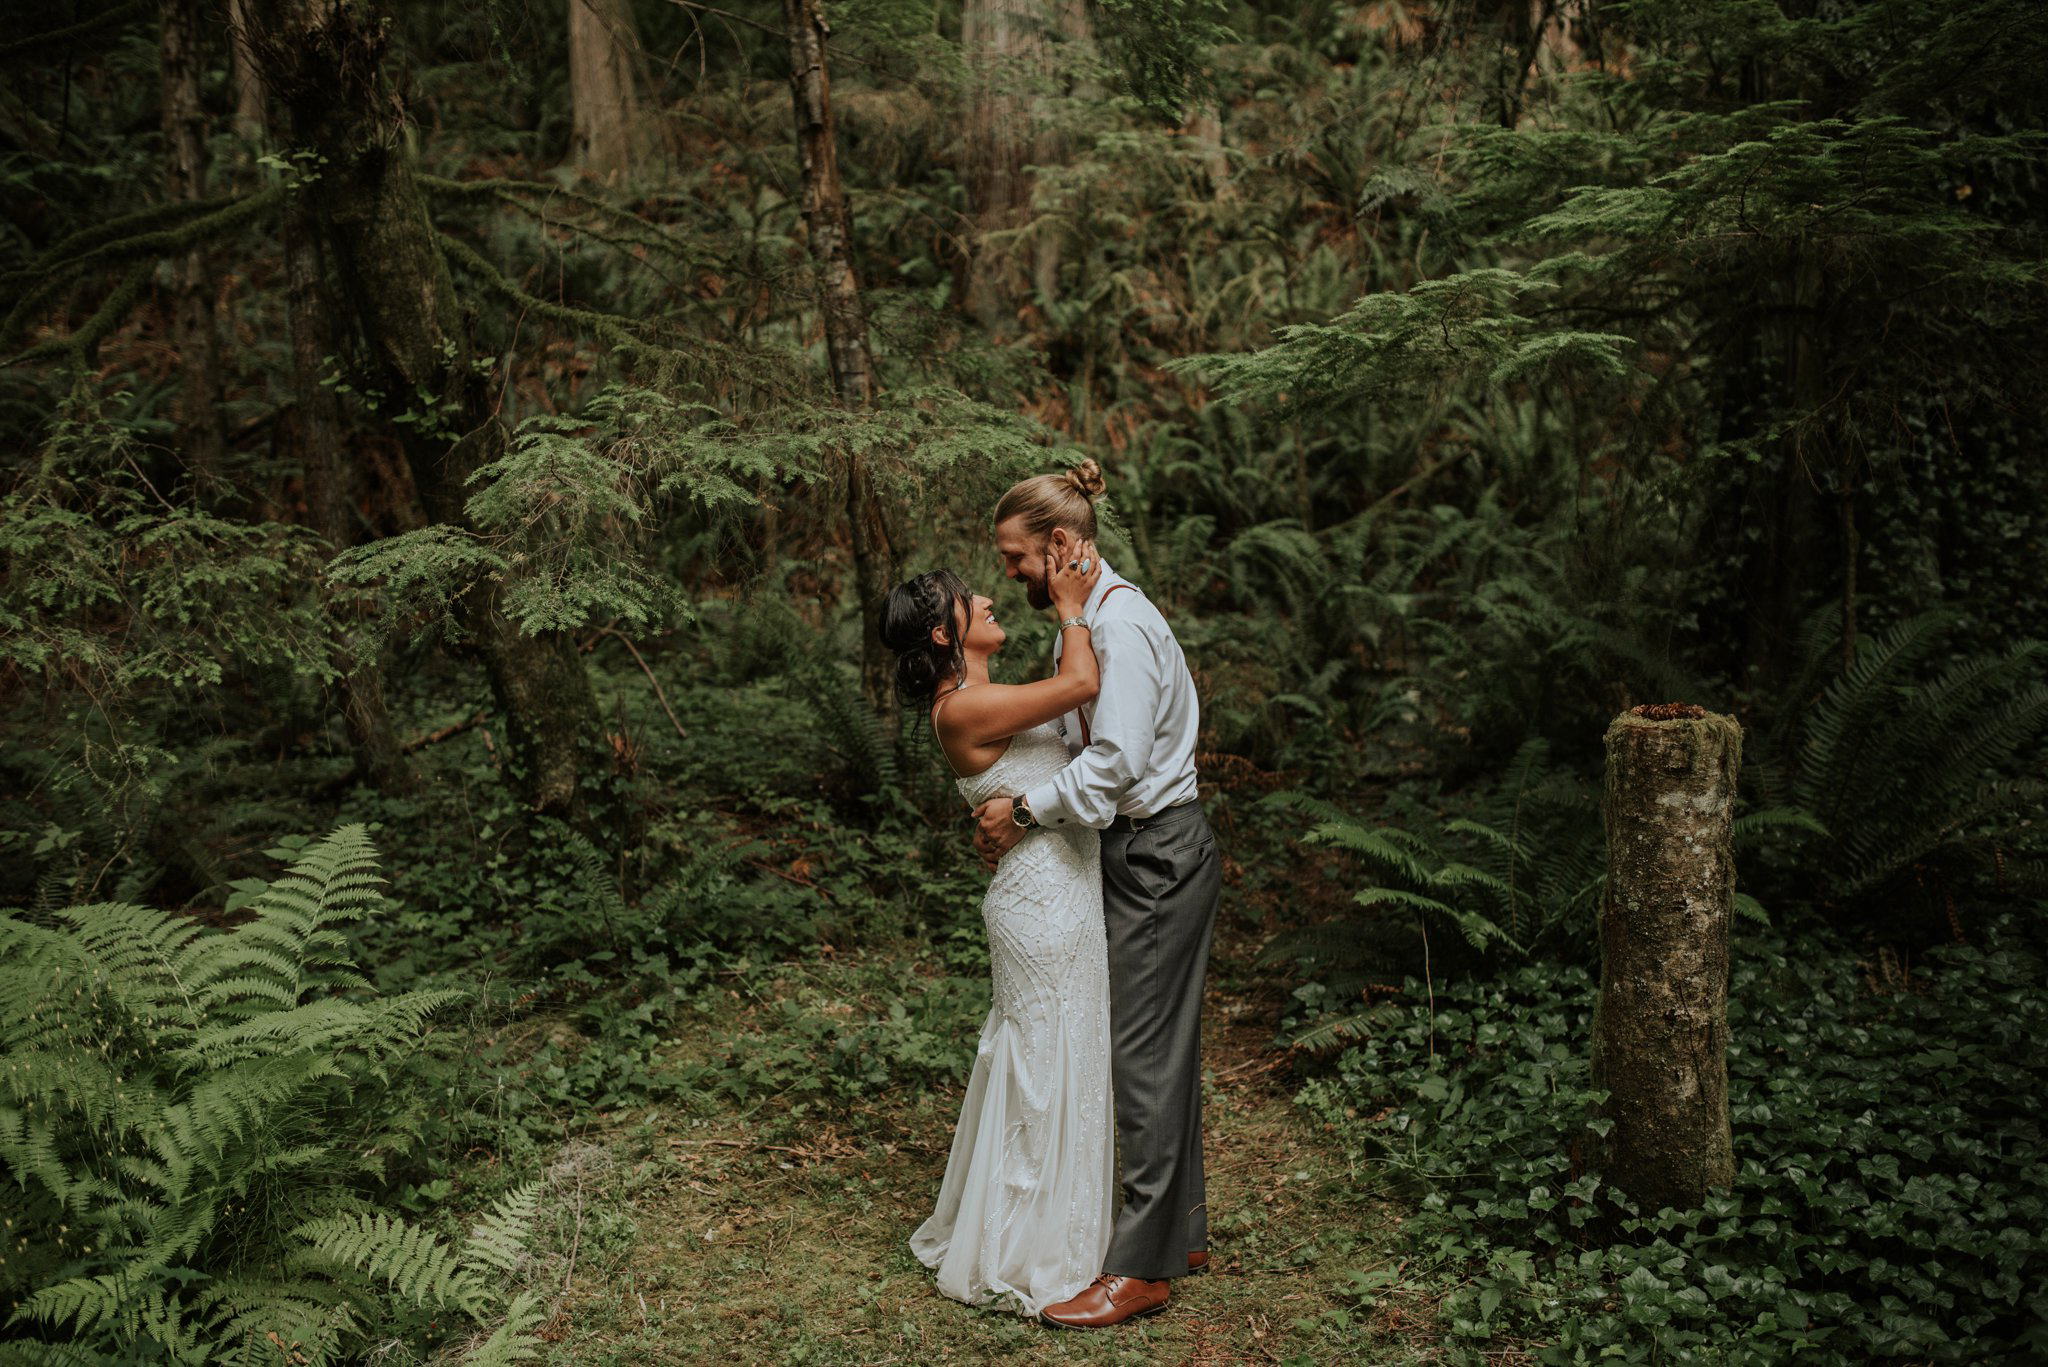 intimate-boho-campfire-wedding-shangri-la-on-the-green-seattle-wedding-photographer-caitlyn-nikula-photography-83.jpg